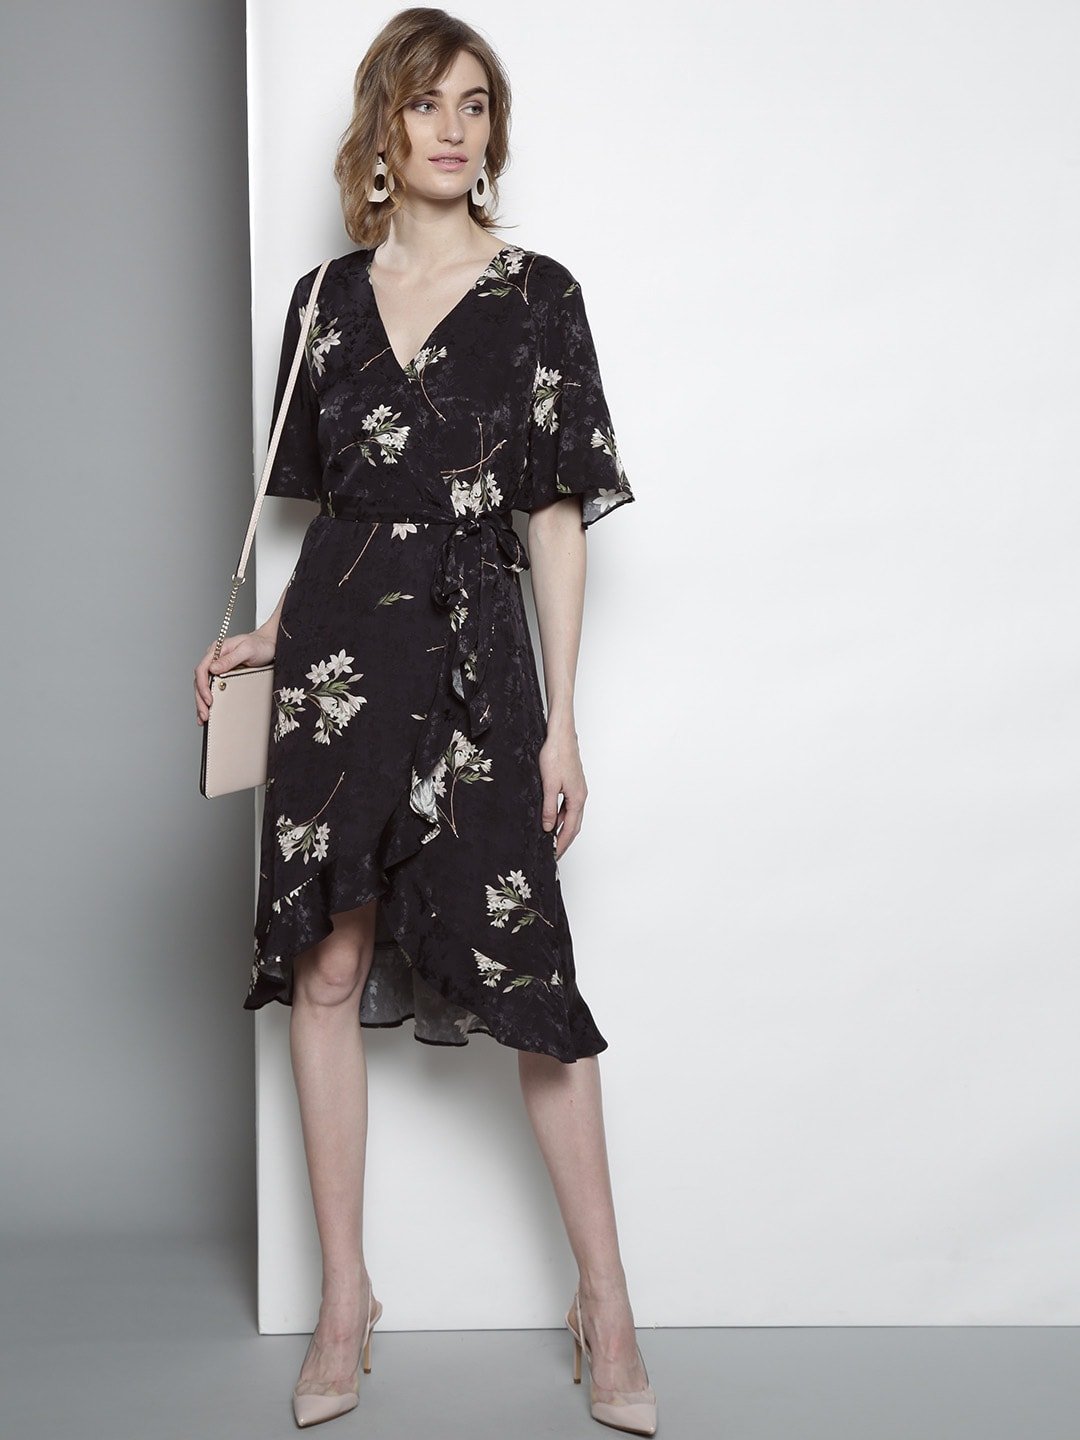 99640352a54 One Piece Dress - Buy One Piece Dresses for Women Online in India